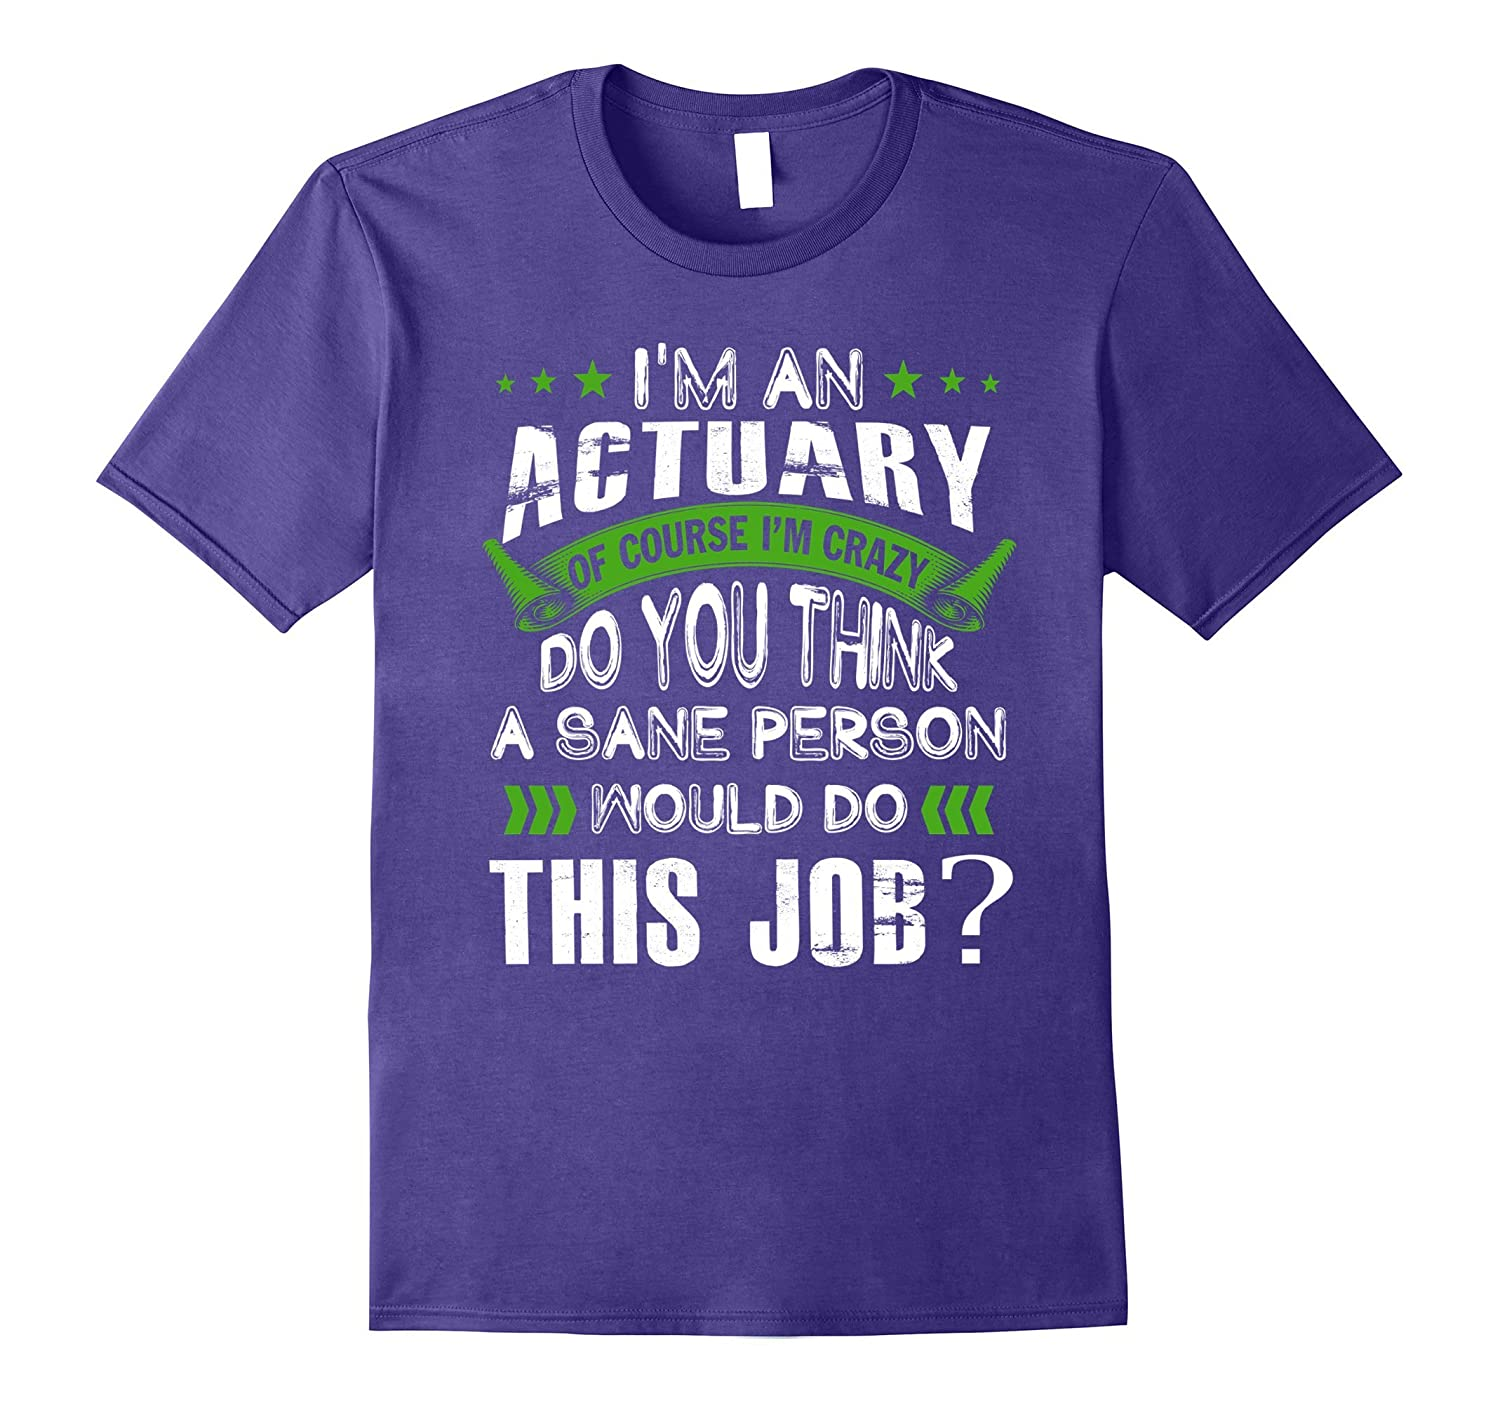 ACTUARY is crazy do you think a sane person would this job-TJ